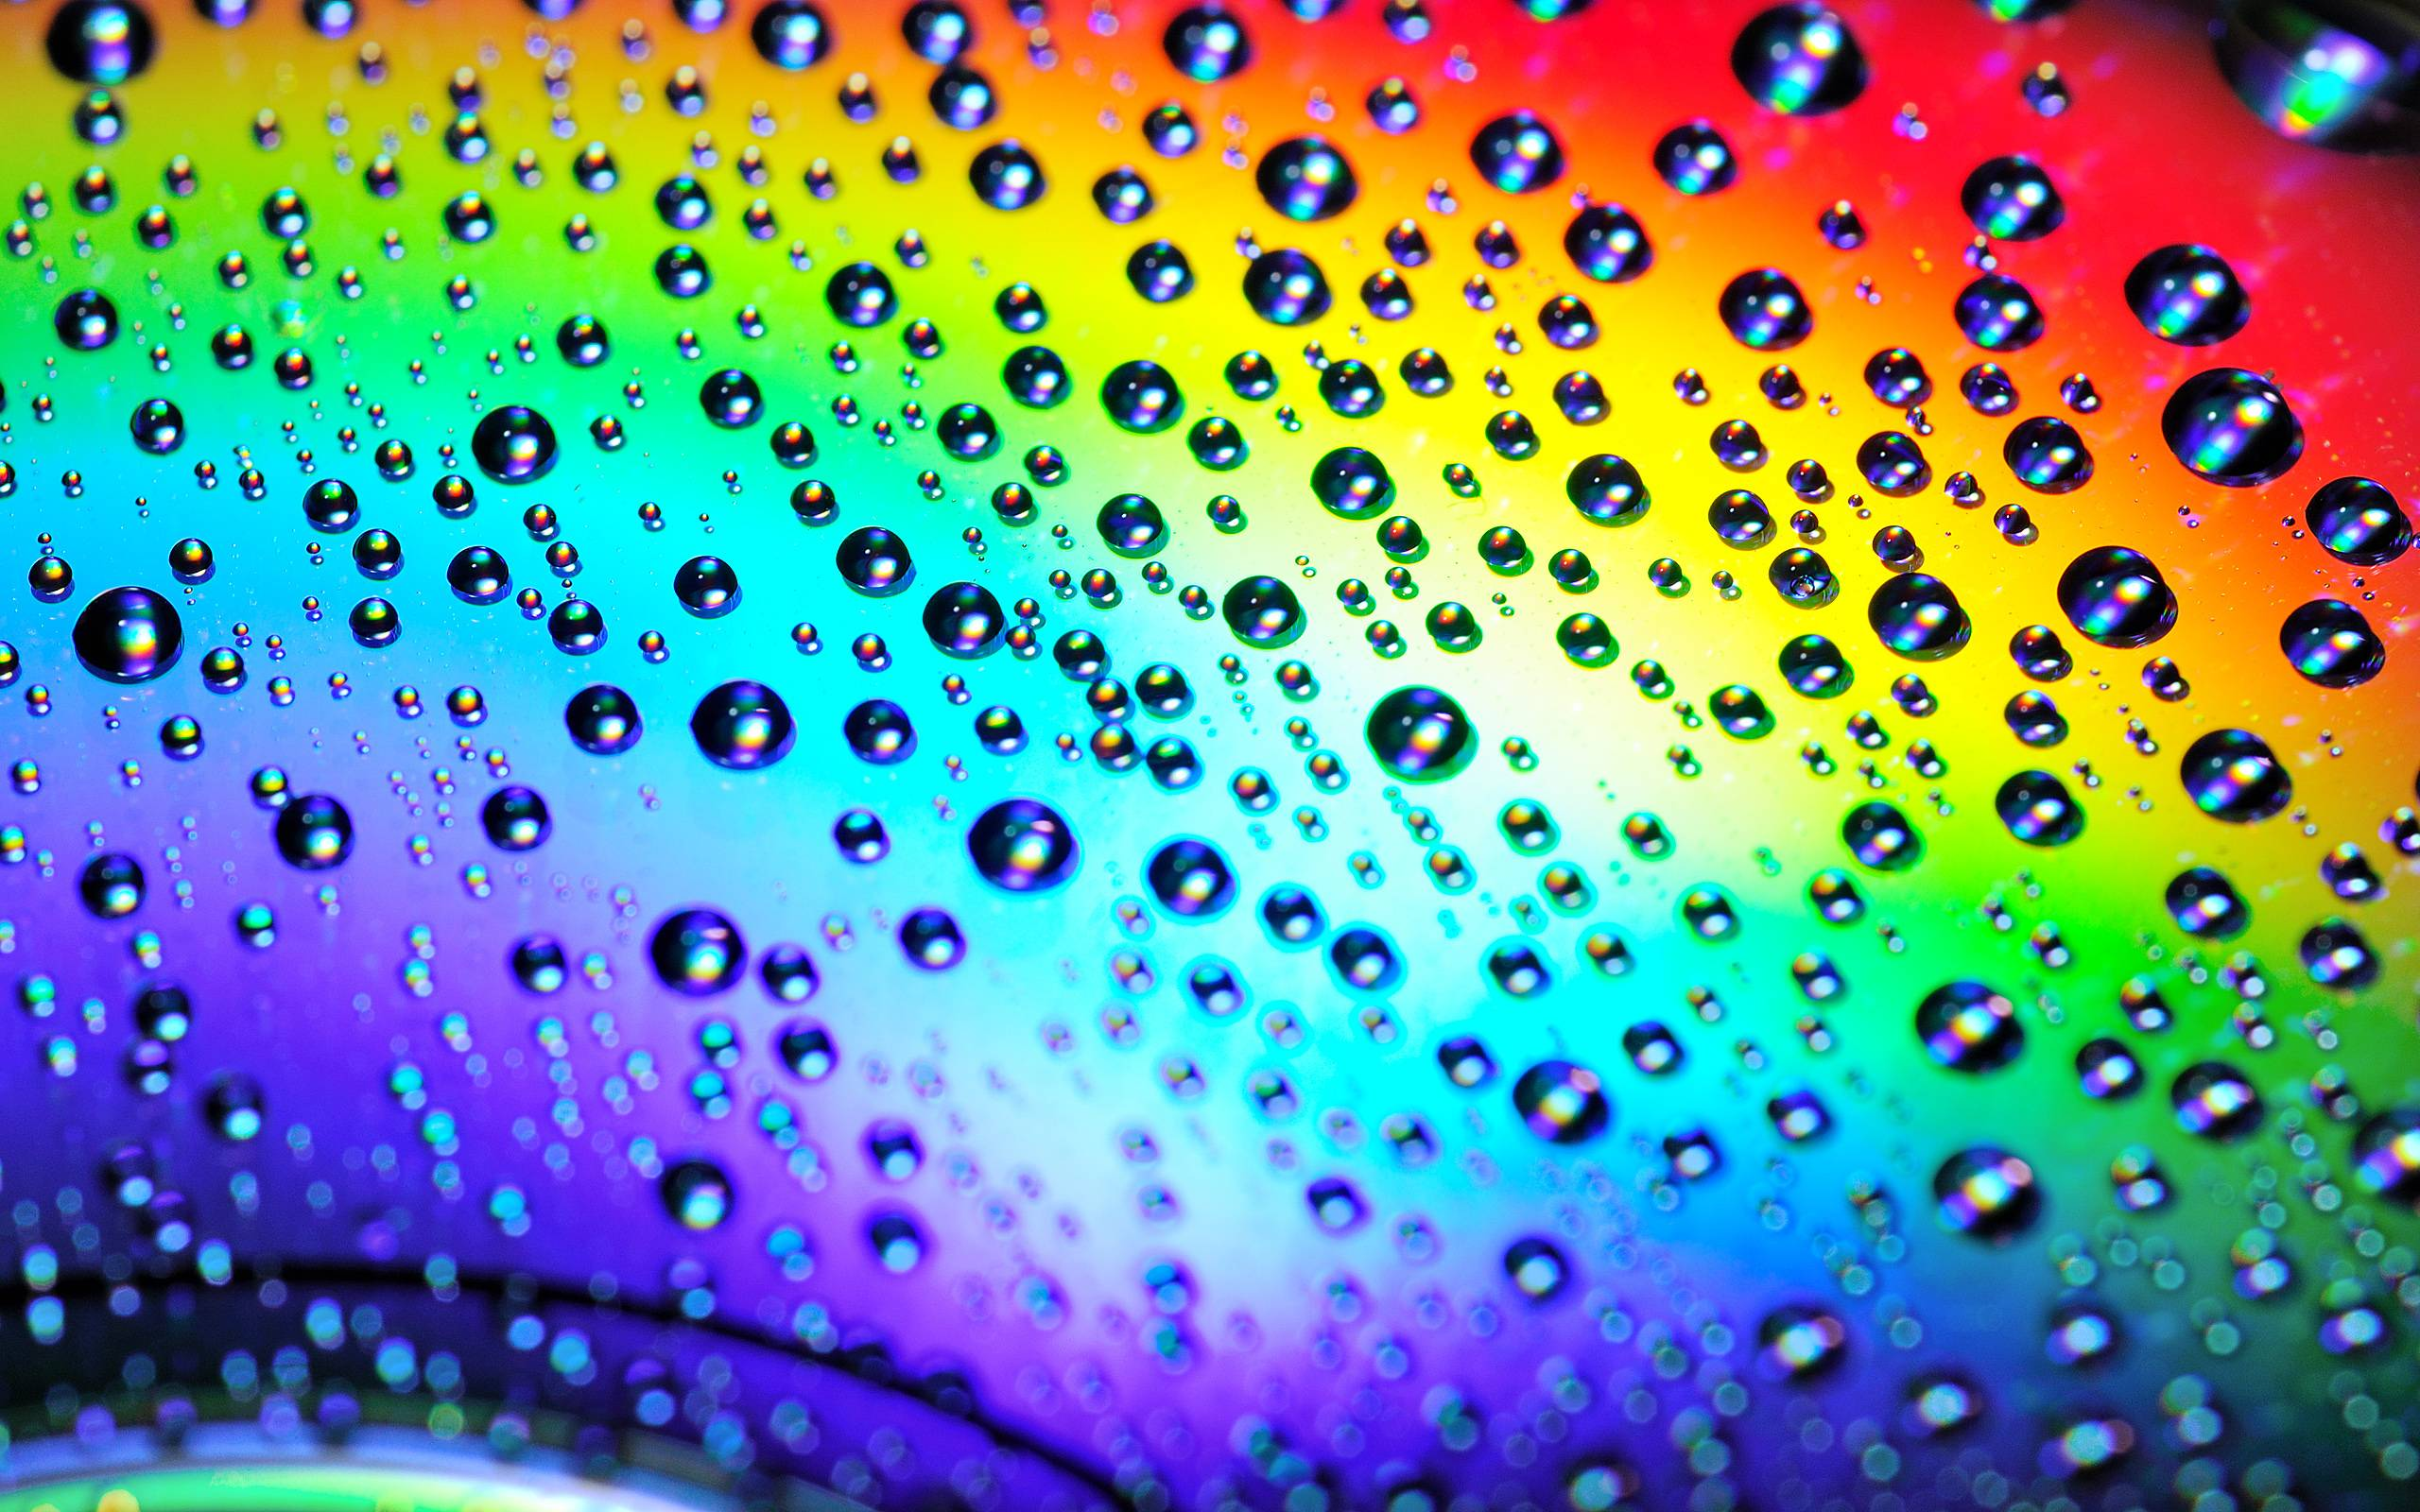 awesome rainbow wallpaper backgrounds - photo #18